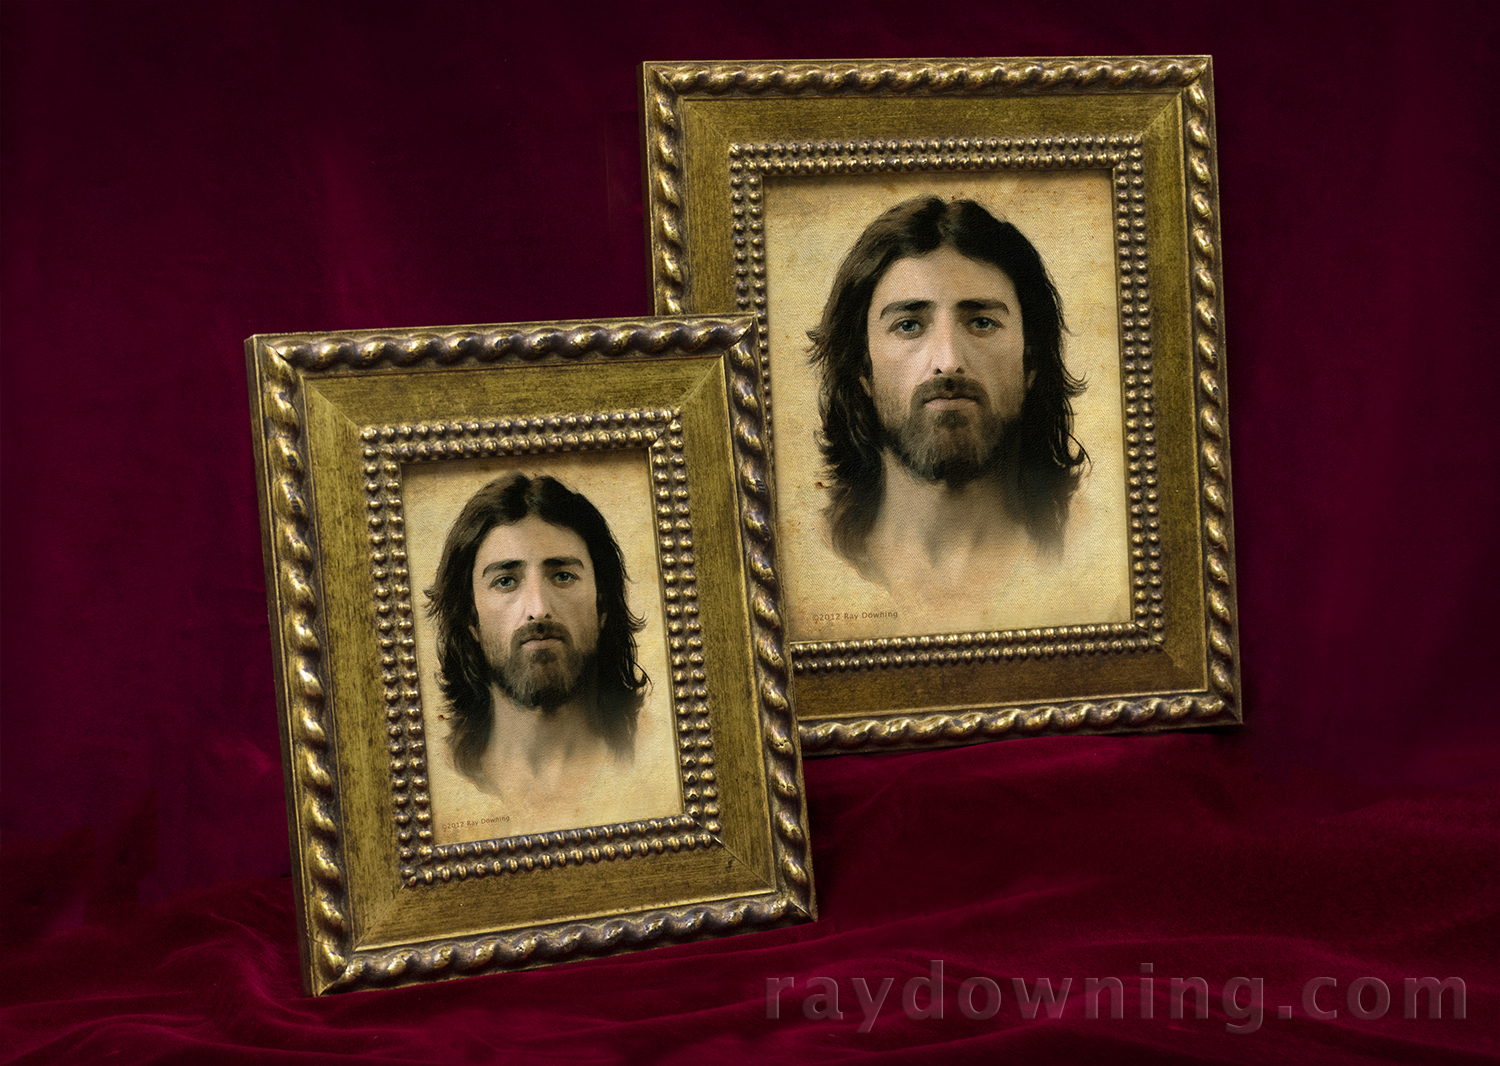 jesus-pictures-shroud-of-turin-i-am-the-way-gold-frame.jpg